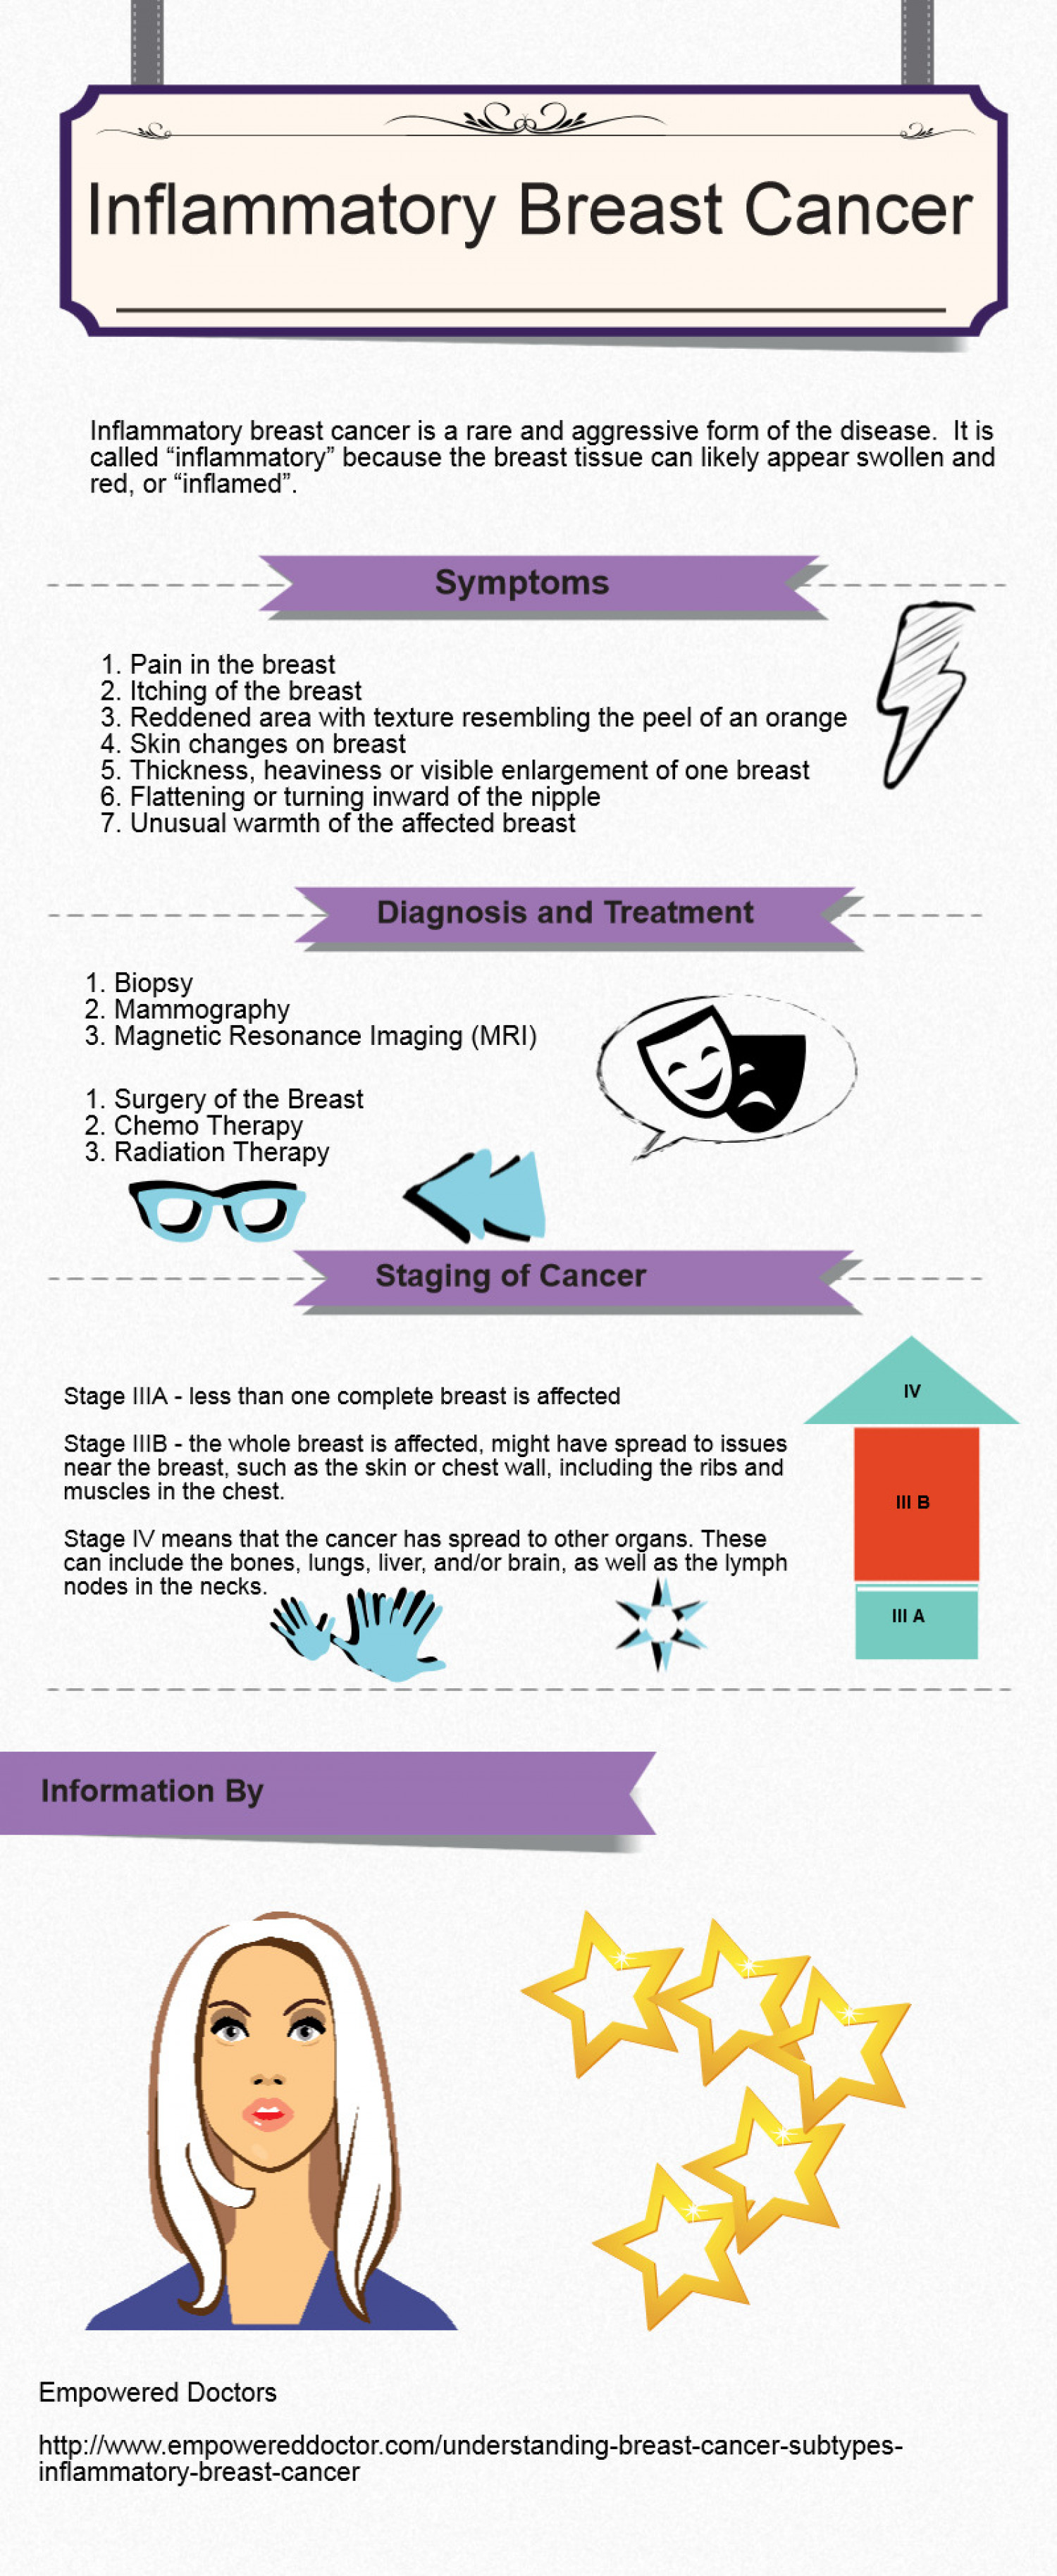 Inflammatory Breast Cancer Infographic